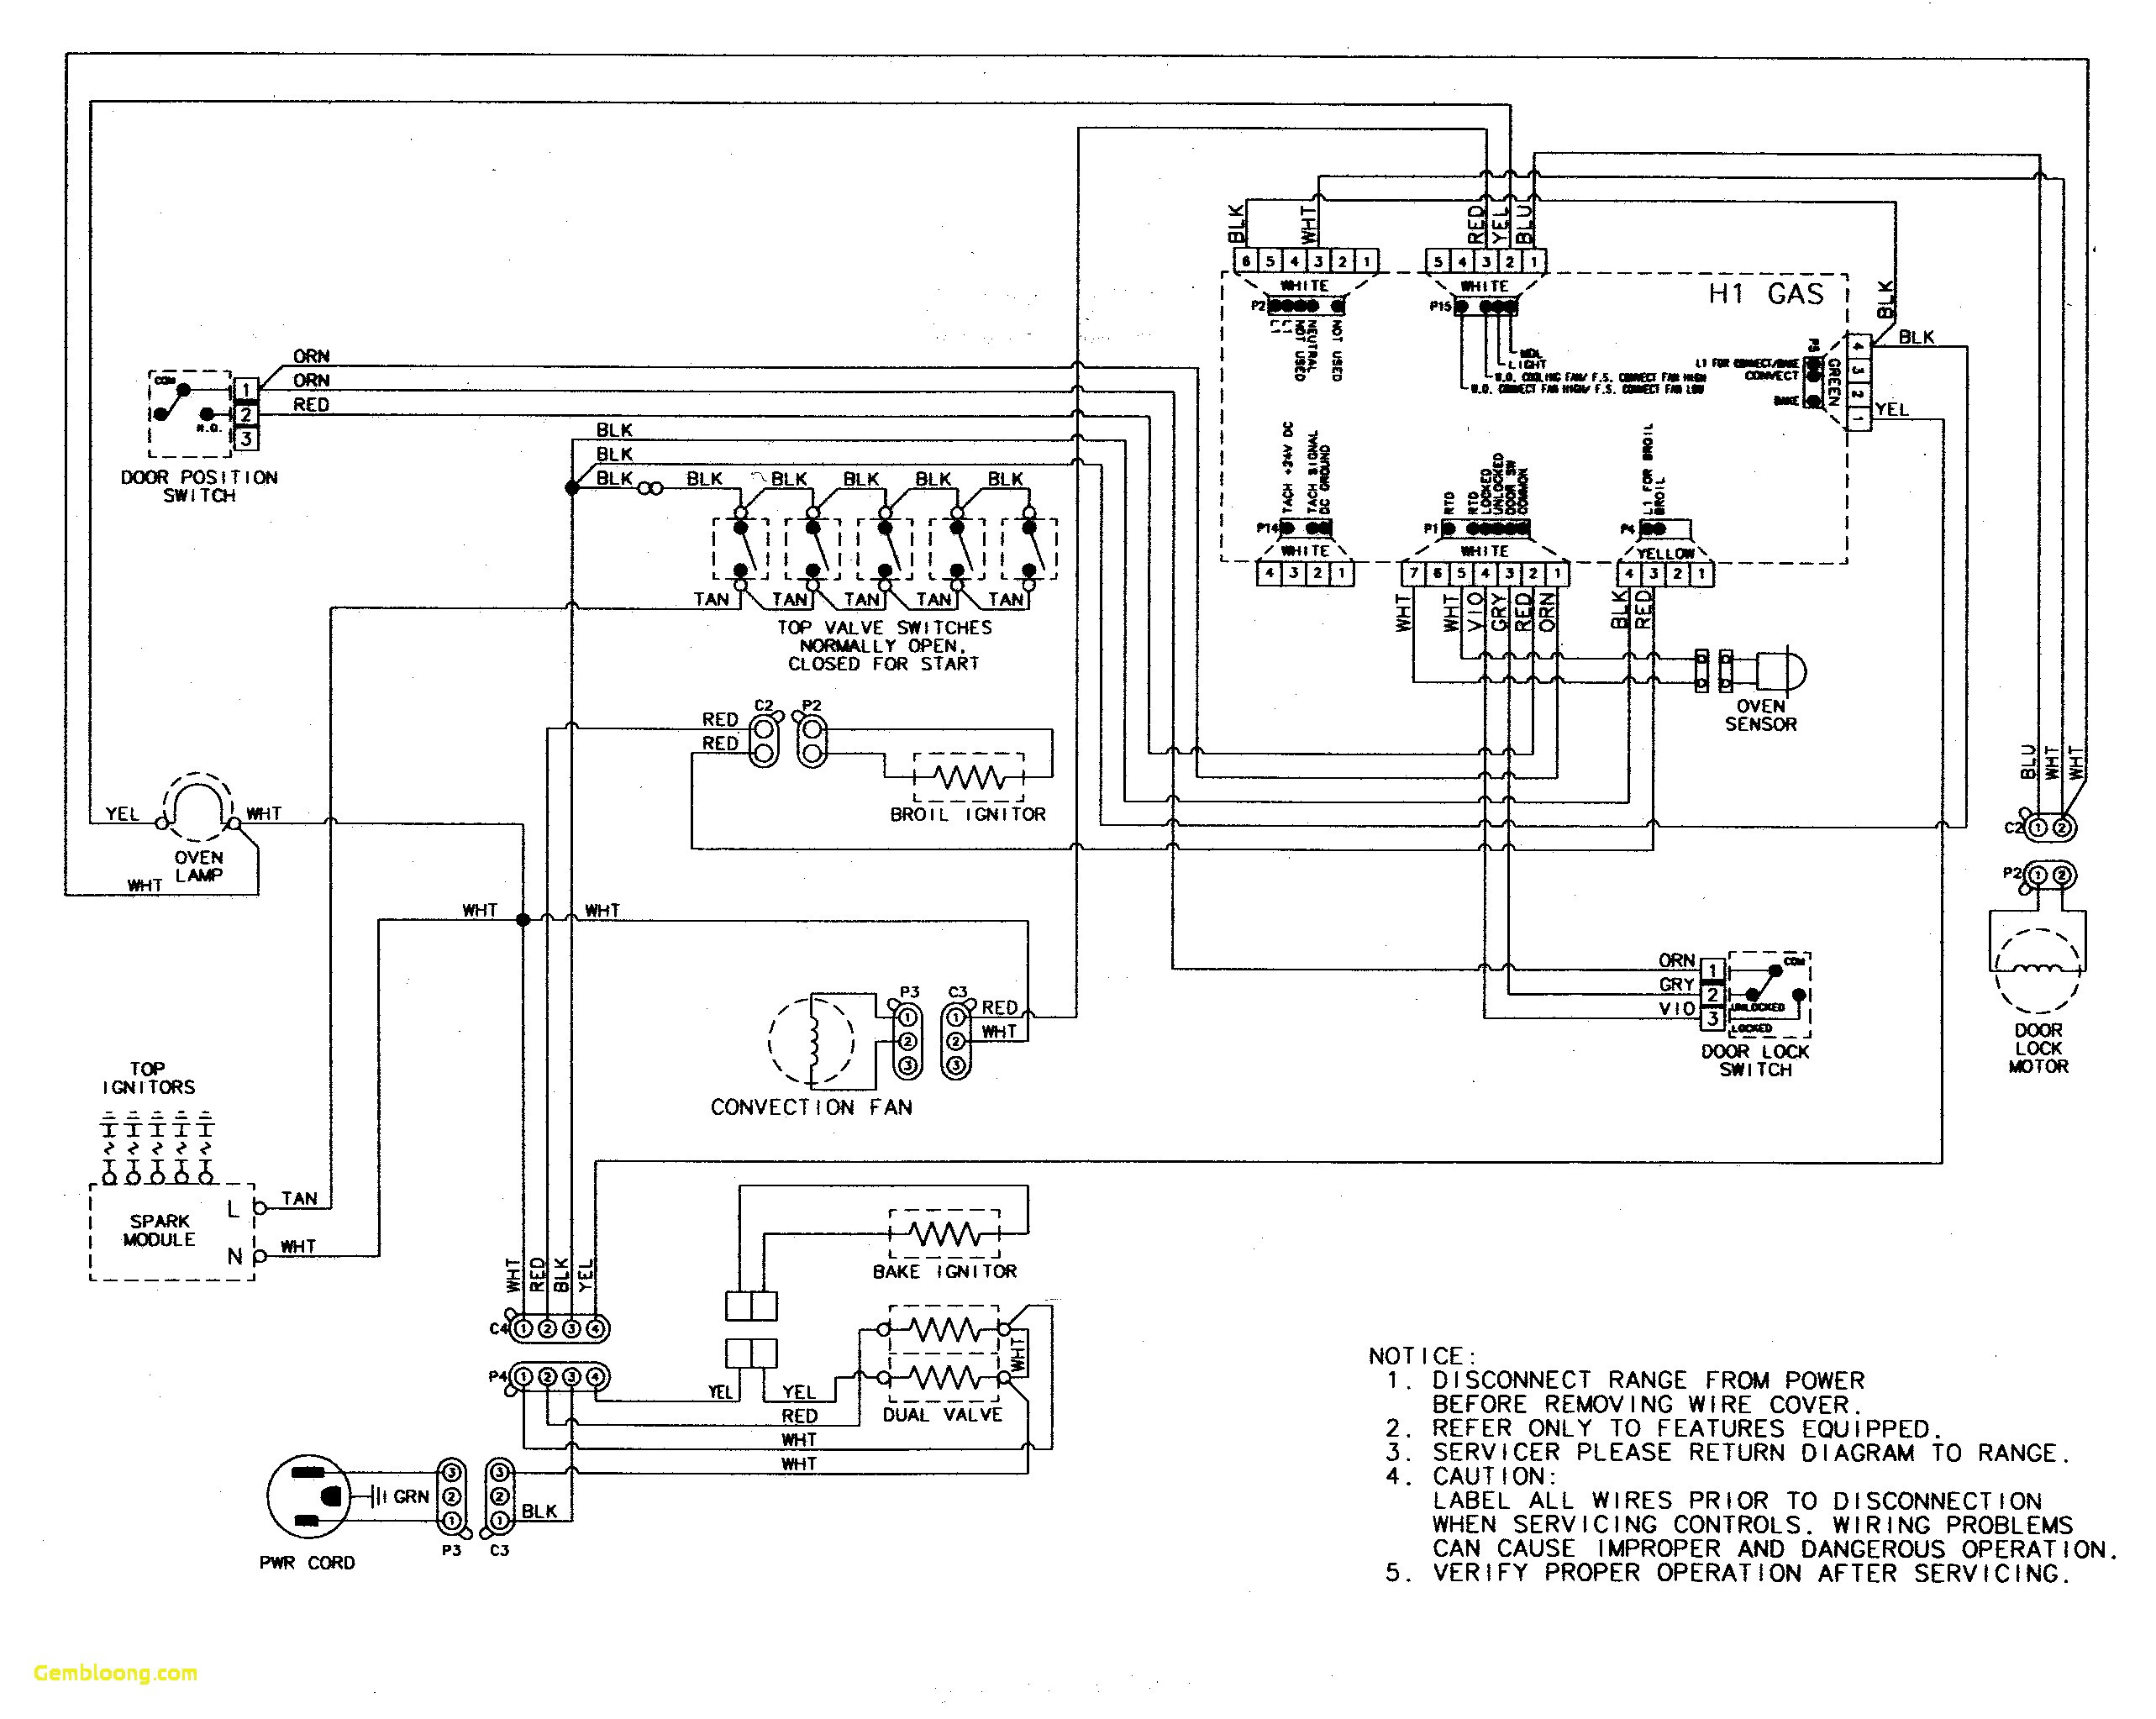 Gas Fireplace Thermostat Wiring Diagram Sample Pdf Nice Nest - Nest Thermostat Wiring Diagram Pdf